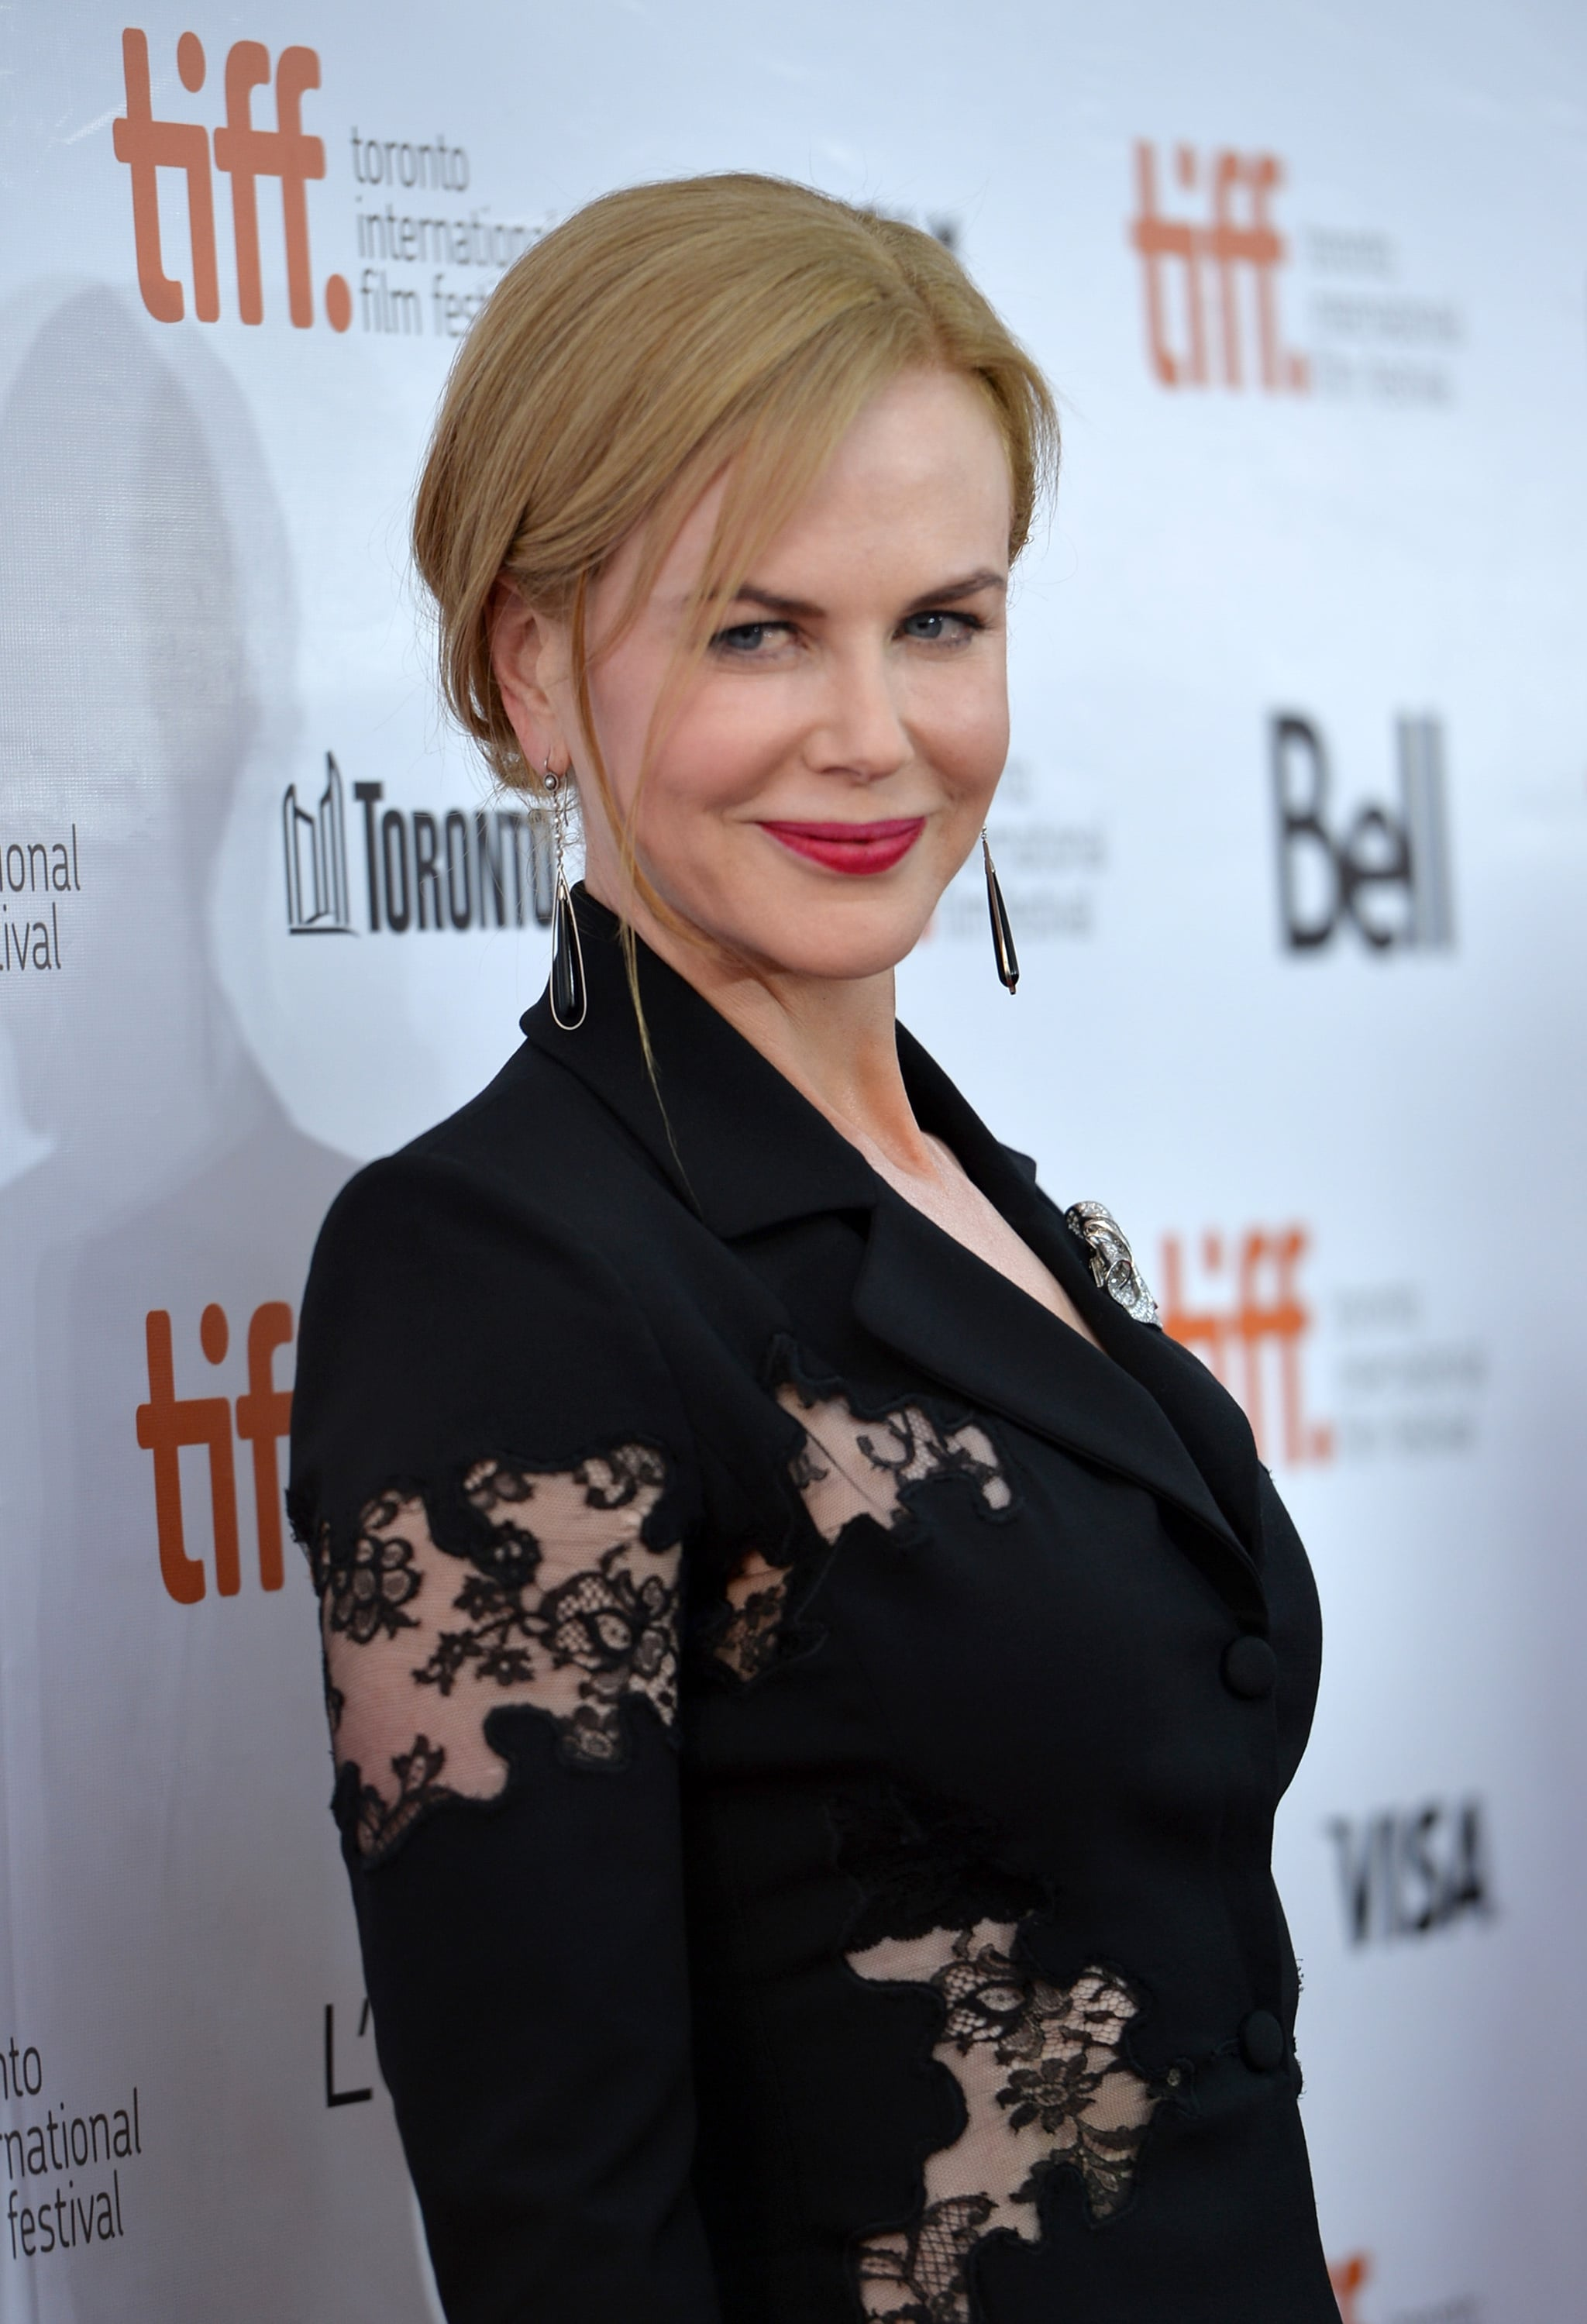 Nicole Kidman wore a lace pantsuit for the premiere of The Railway Man.